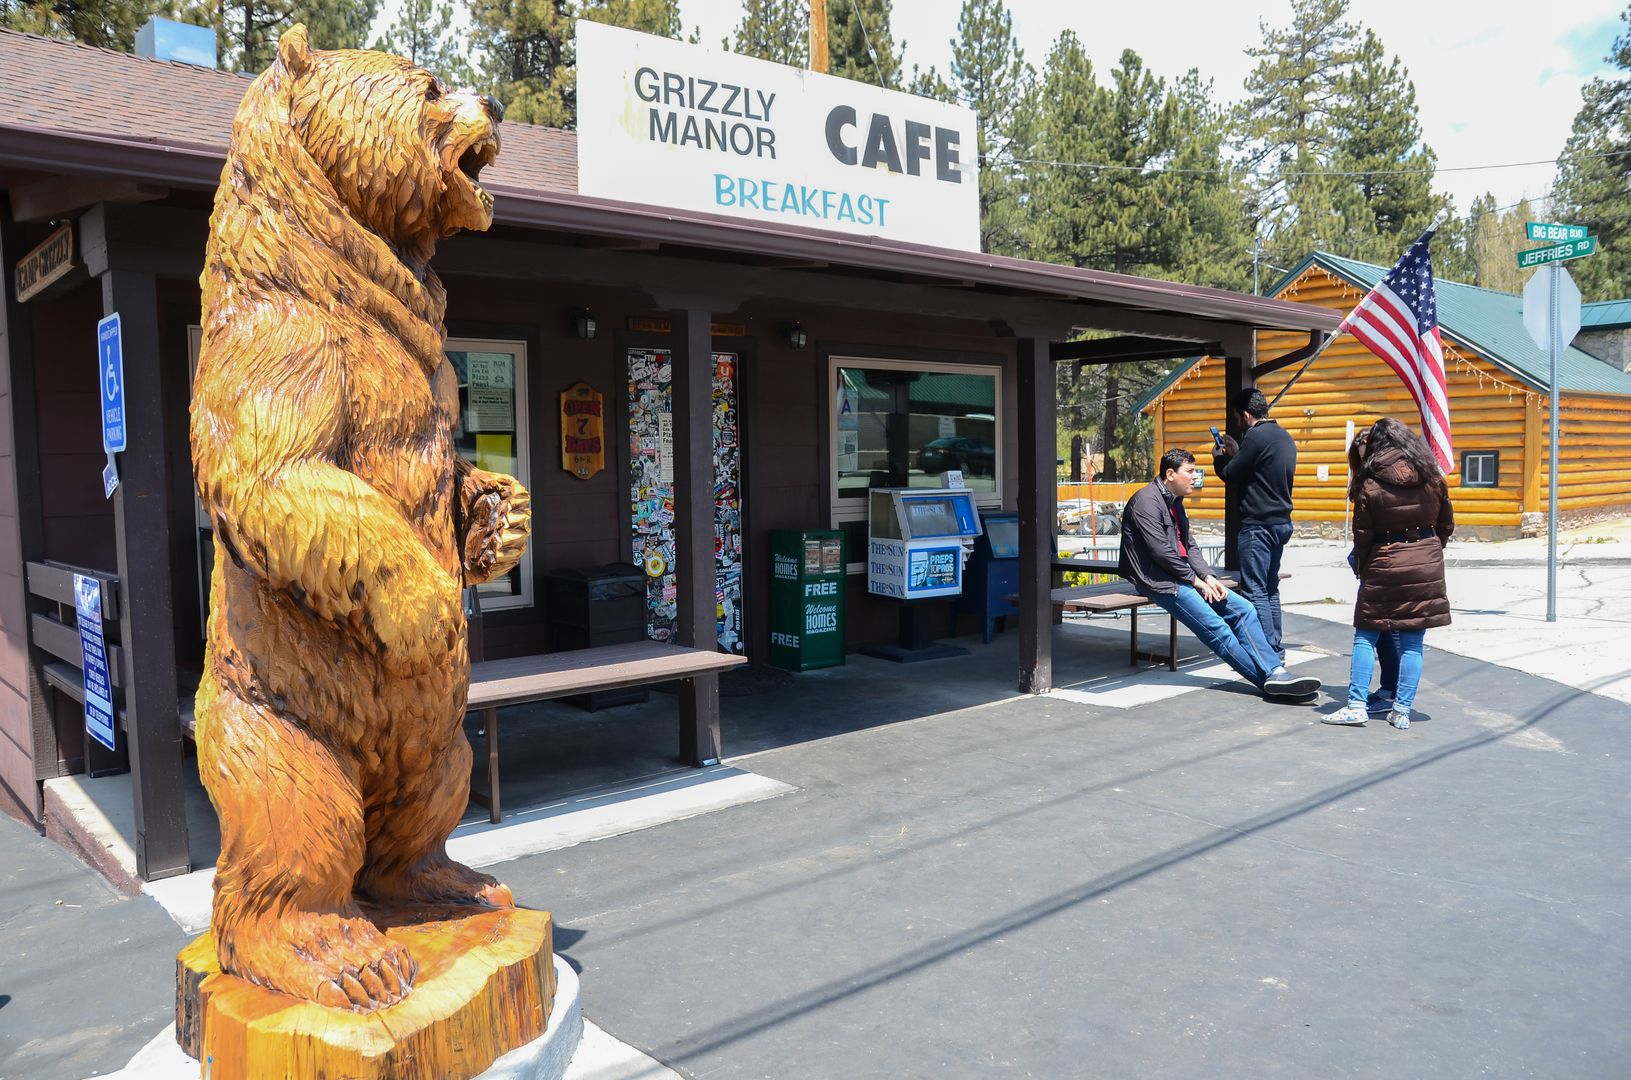 Grizzly Manor Cafe In Big Bear Lake Ca The Grizz With Images